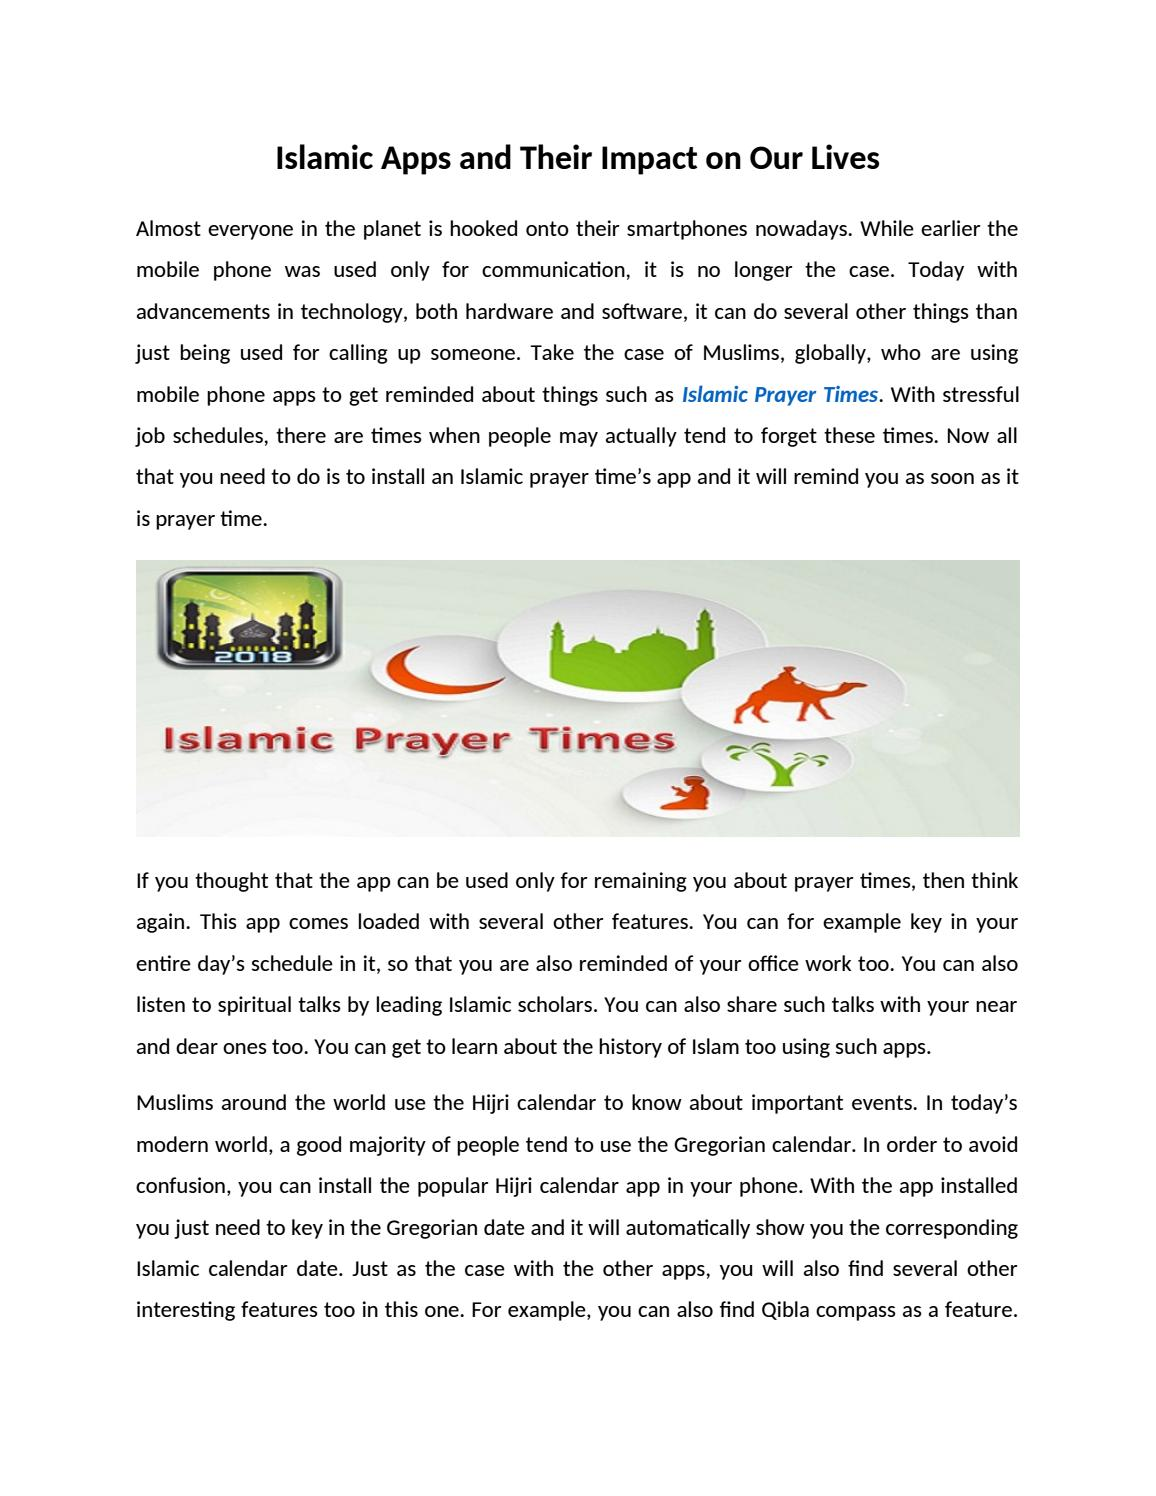 Islamic Apps and Their Impact on Our Lives by Javid Hassan